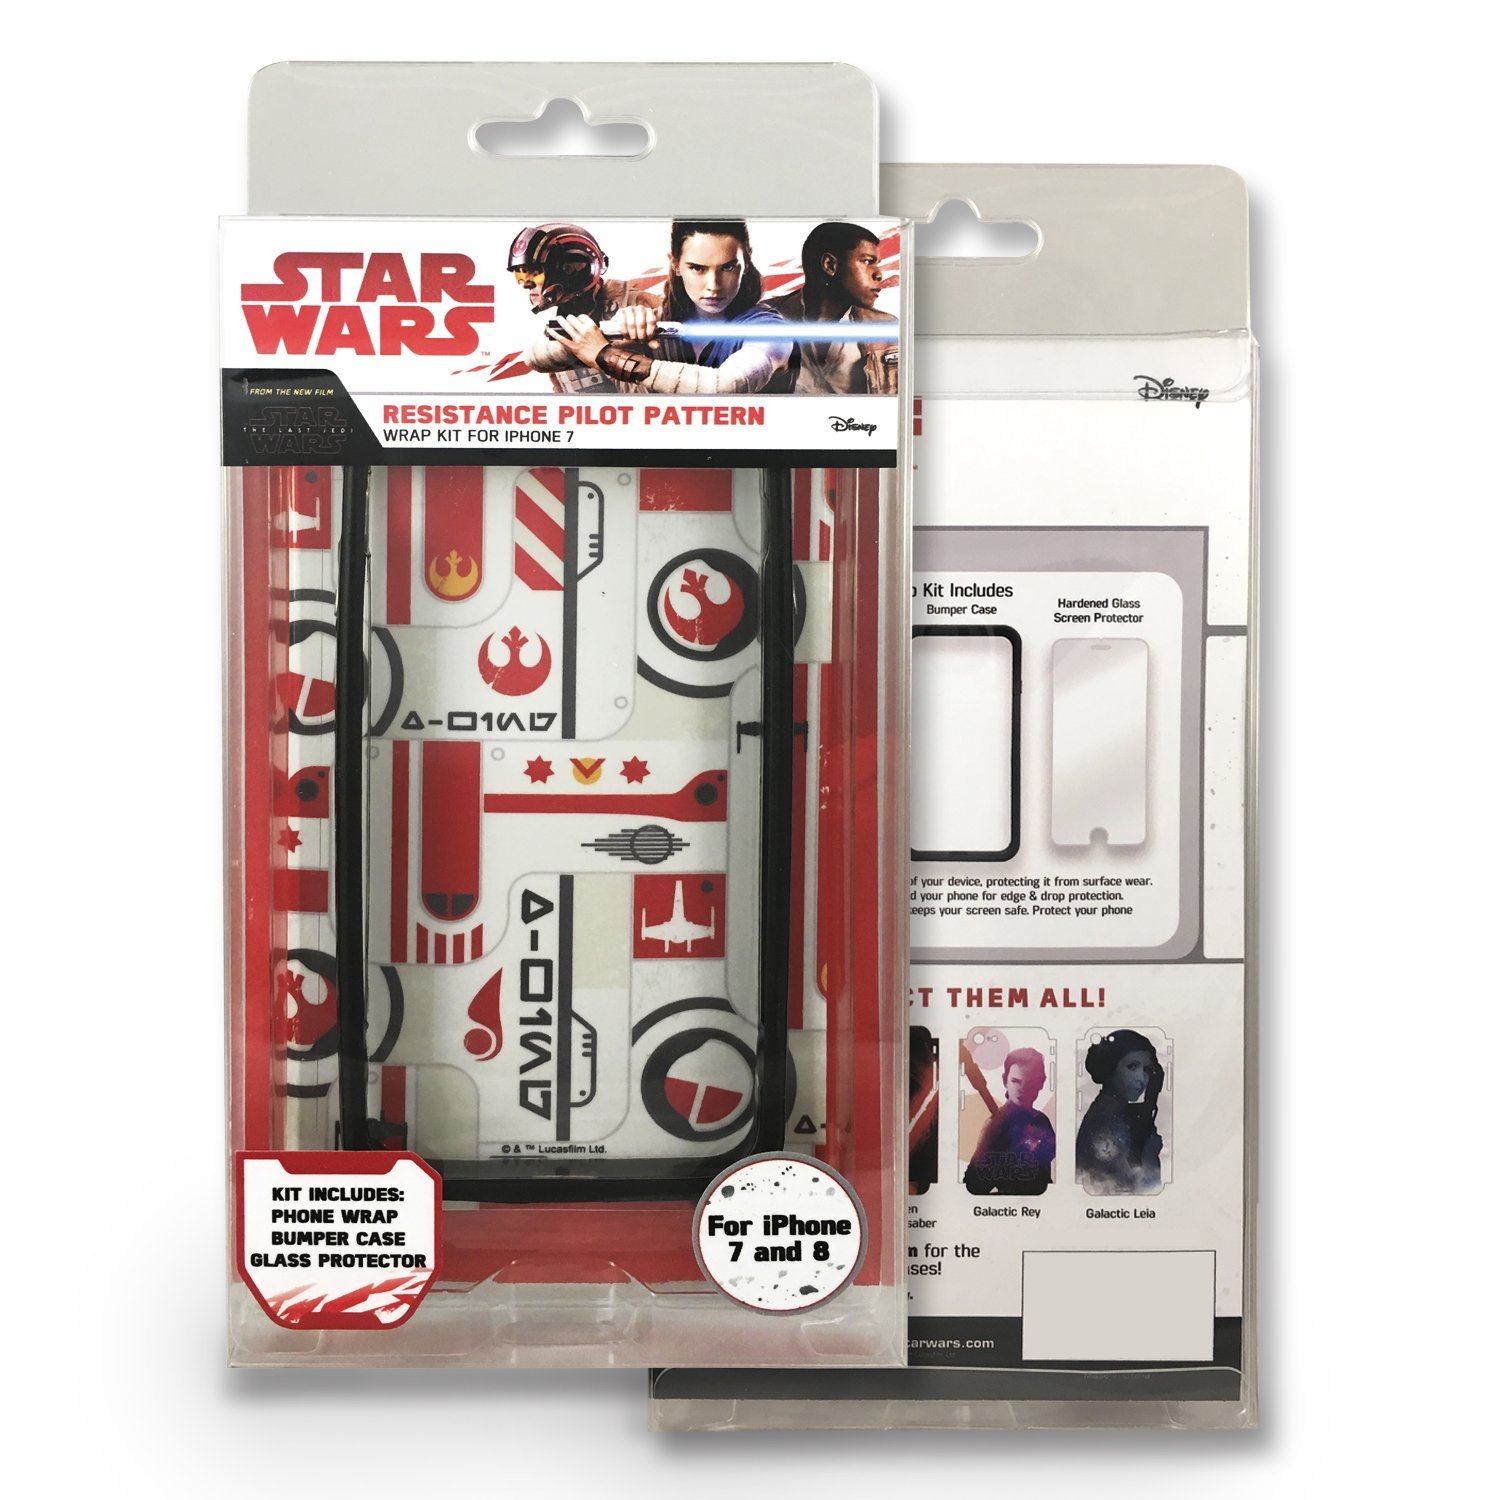 TLJ Resistance Pilot Pattern iPhone 7 & 8 Wrap Kit